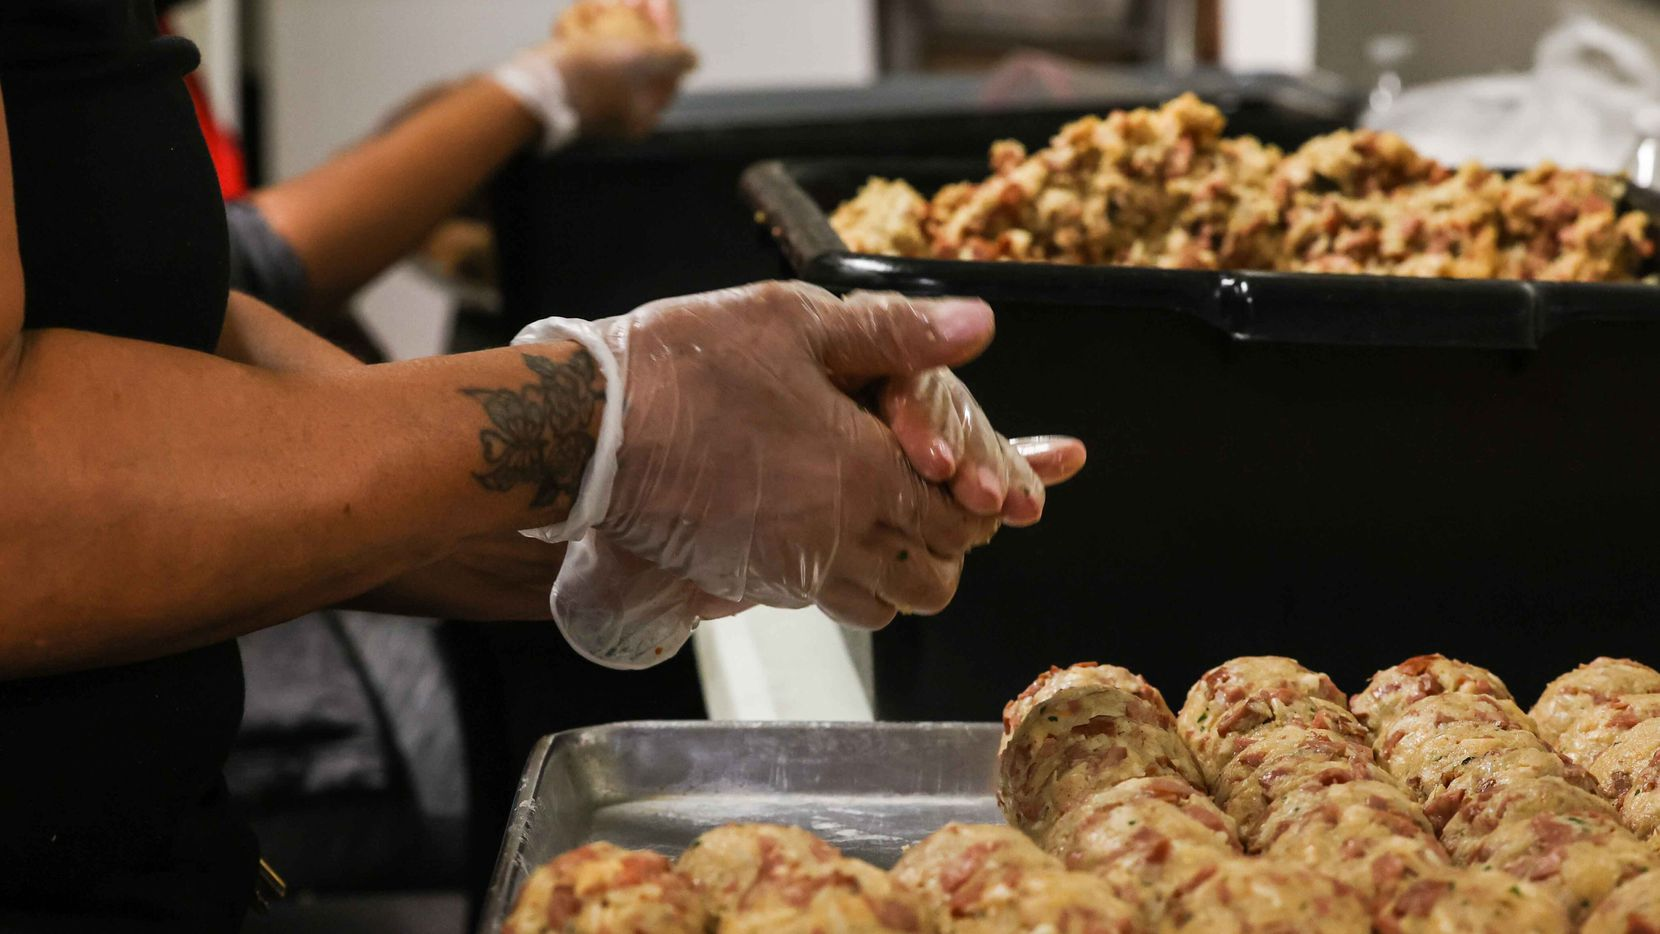 Teams of five to 10 people work shifts 24 hours a day to pre-make 100,000 gumbo balls before the State Fair of Texas.